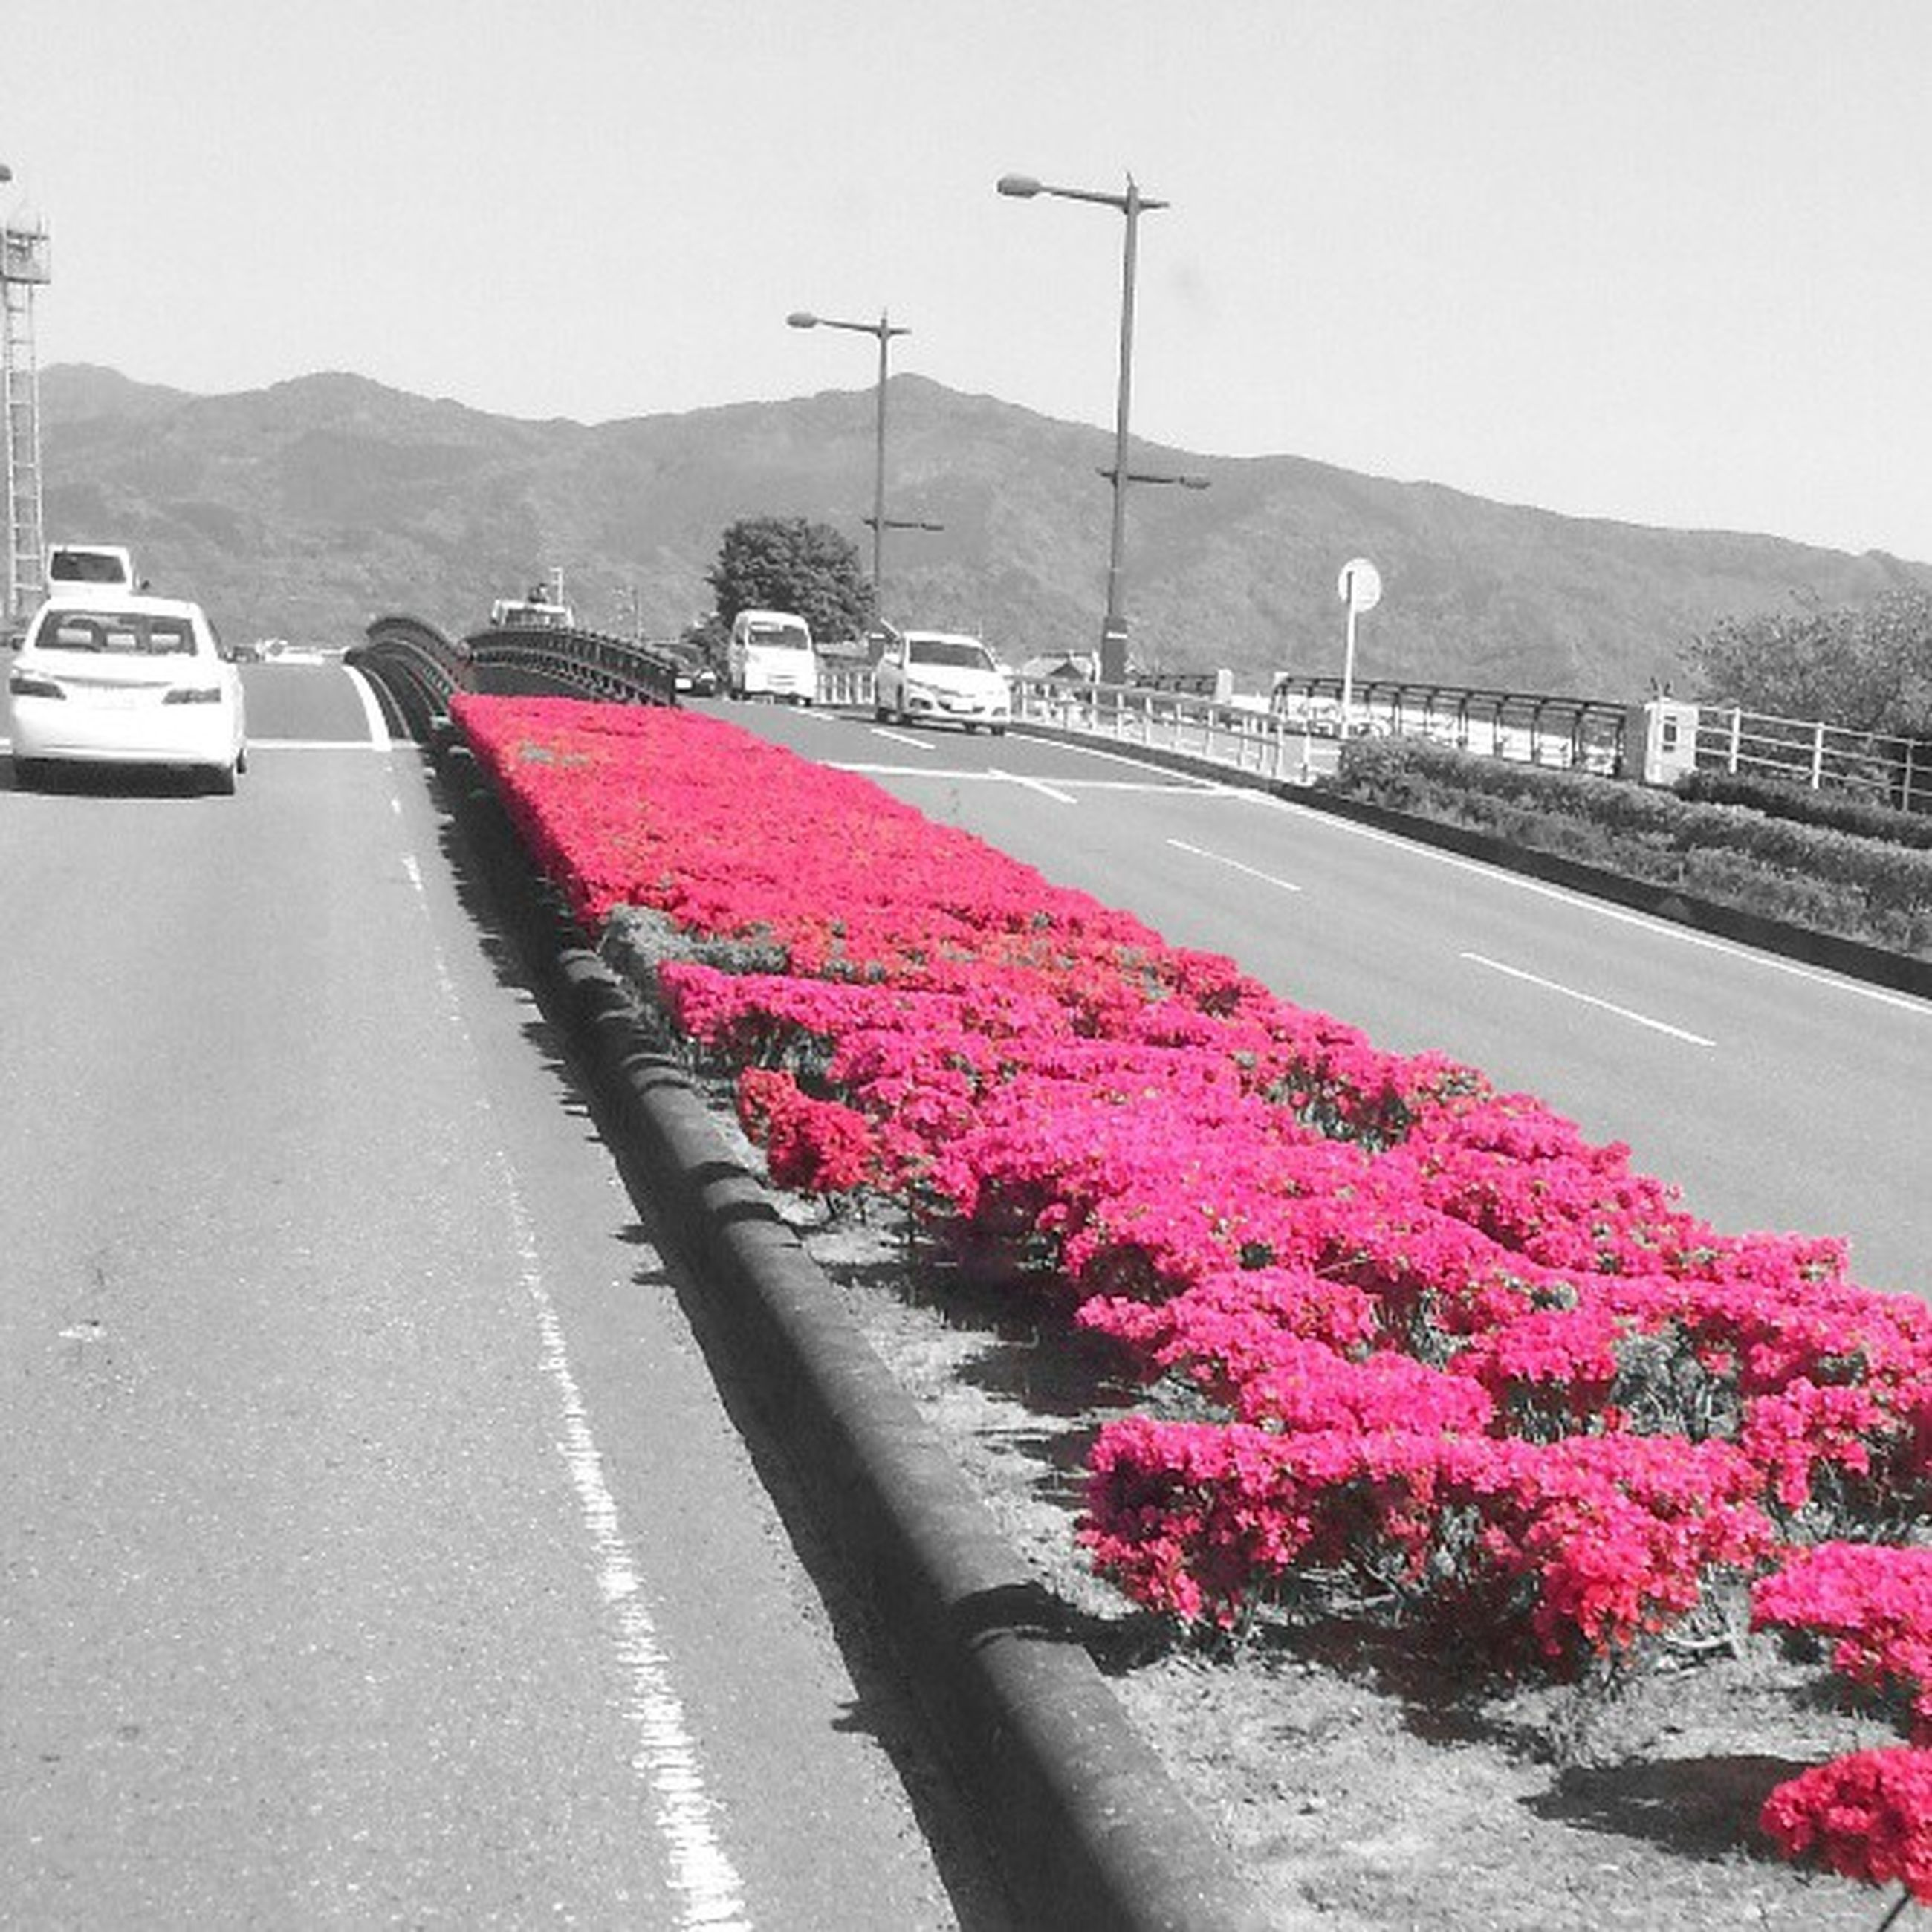 flower, transportation, road, car, land vehicle, mountain, mode of transport, sky, street, clear sky, the way forward, growth, plant, nature, freshness, beauty in nature, red, outdoors, road marking, day